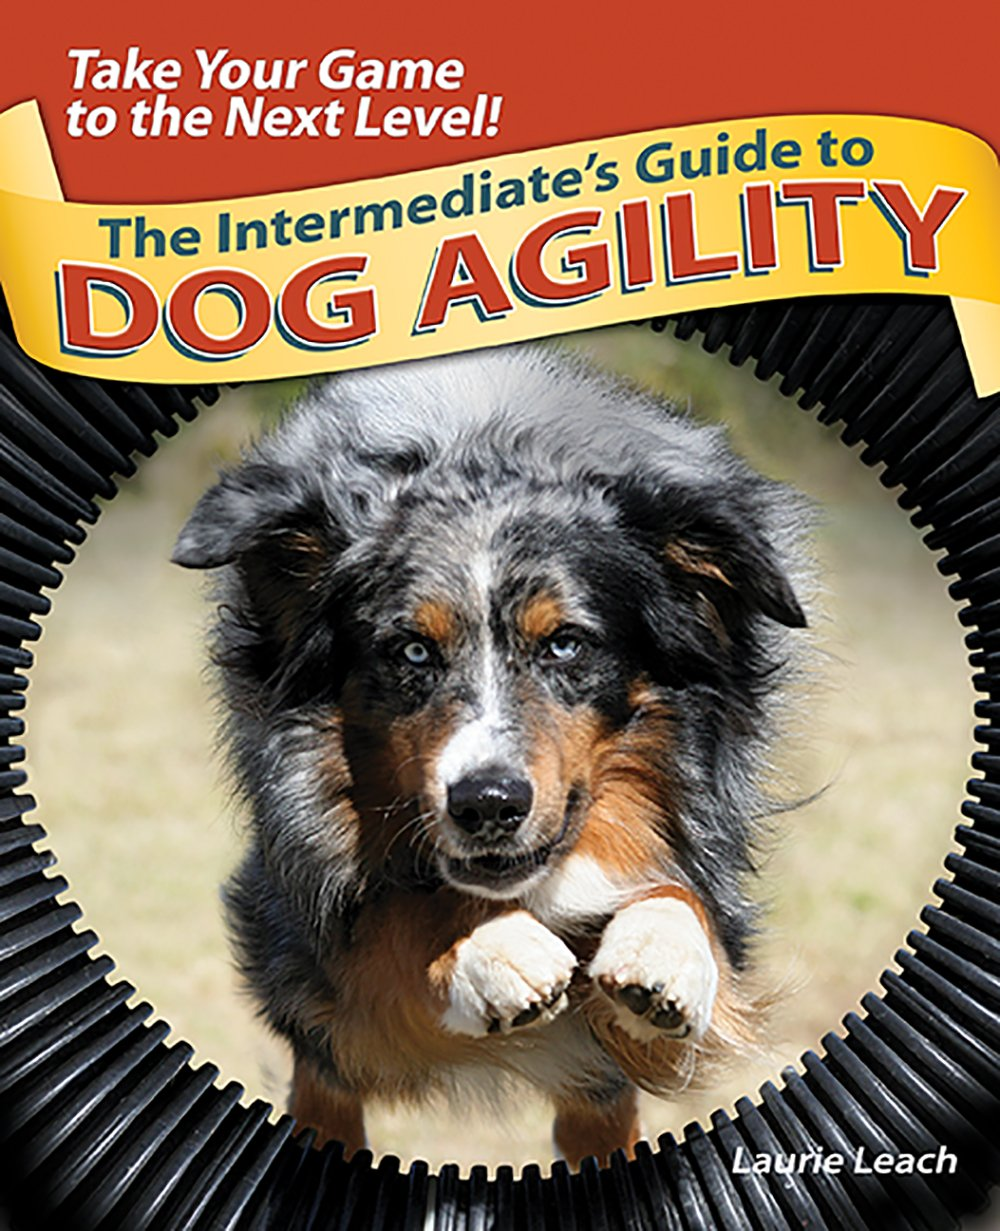 The Intermediate's Guide to Dog Agility: Take Your Game to the Next Level!